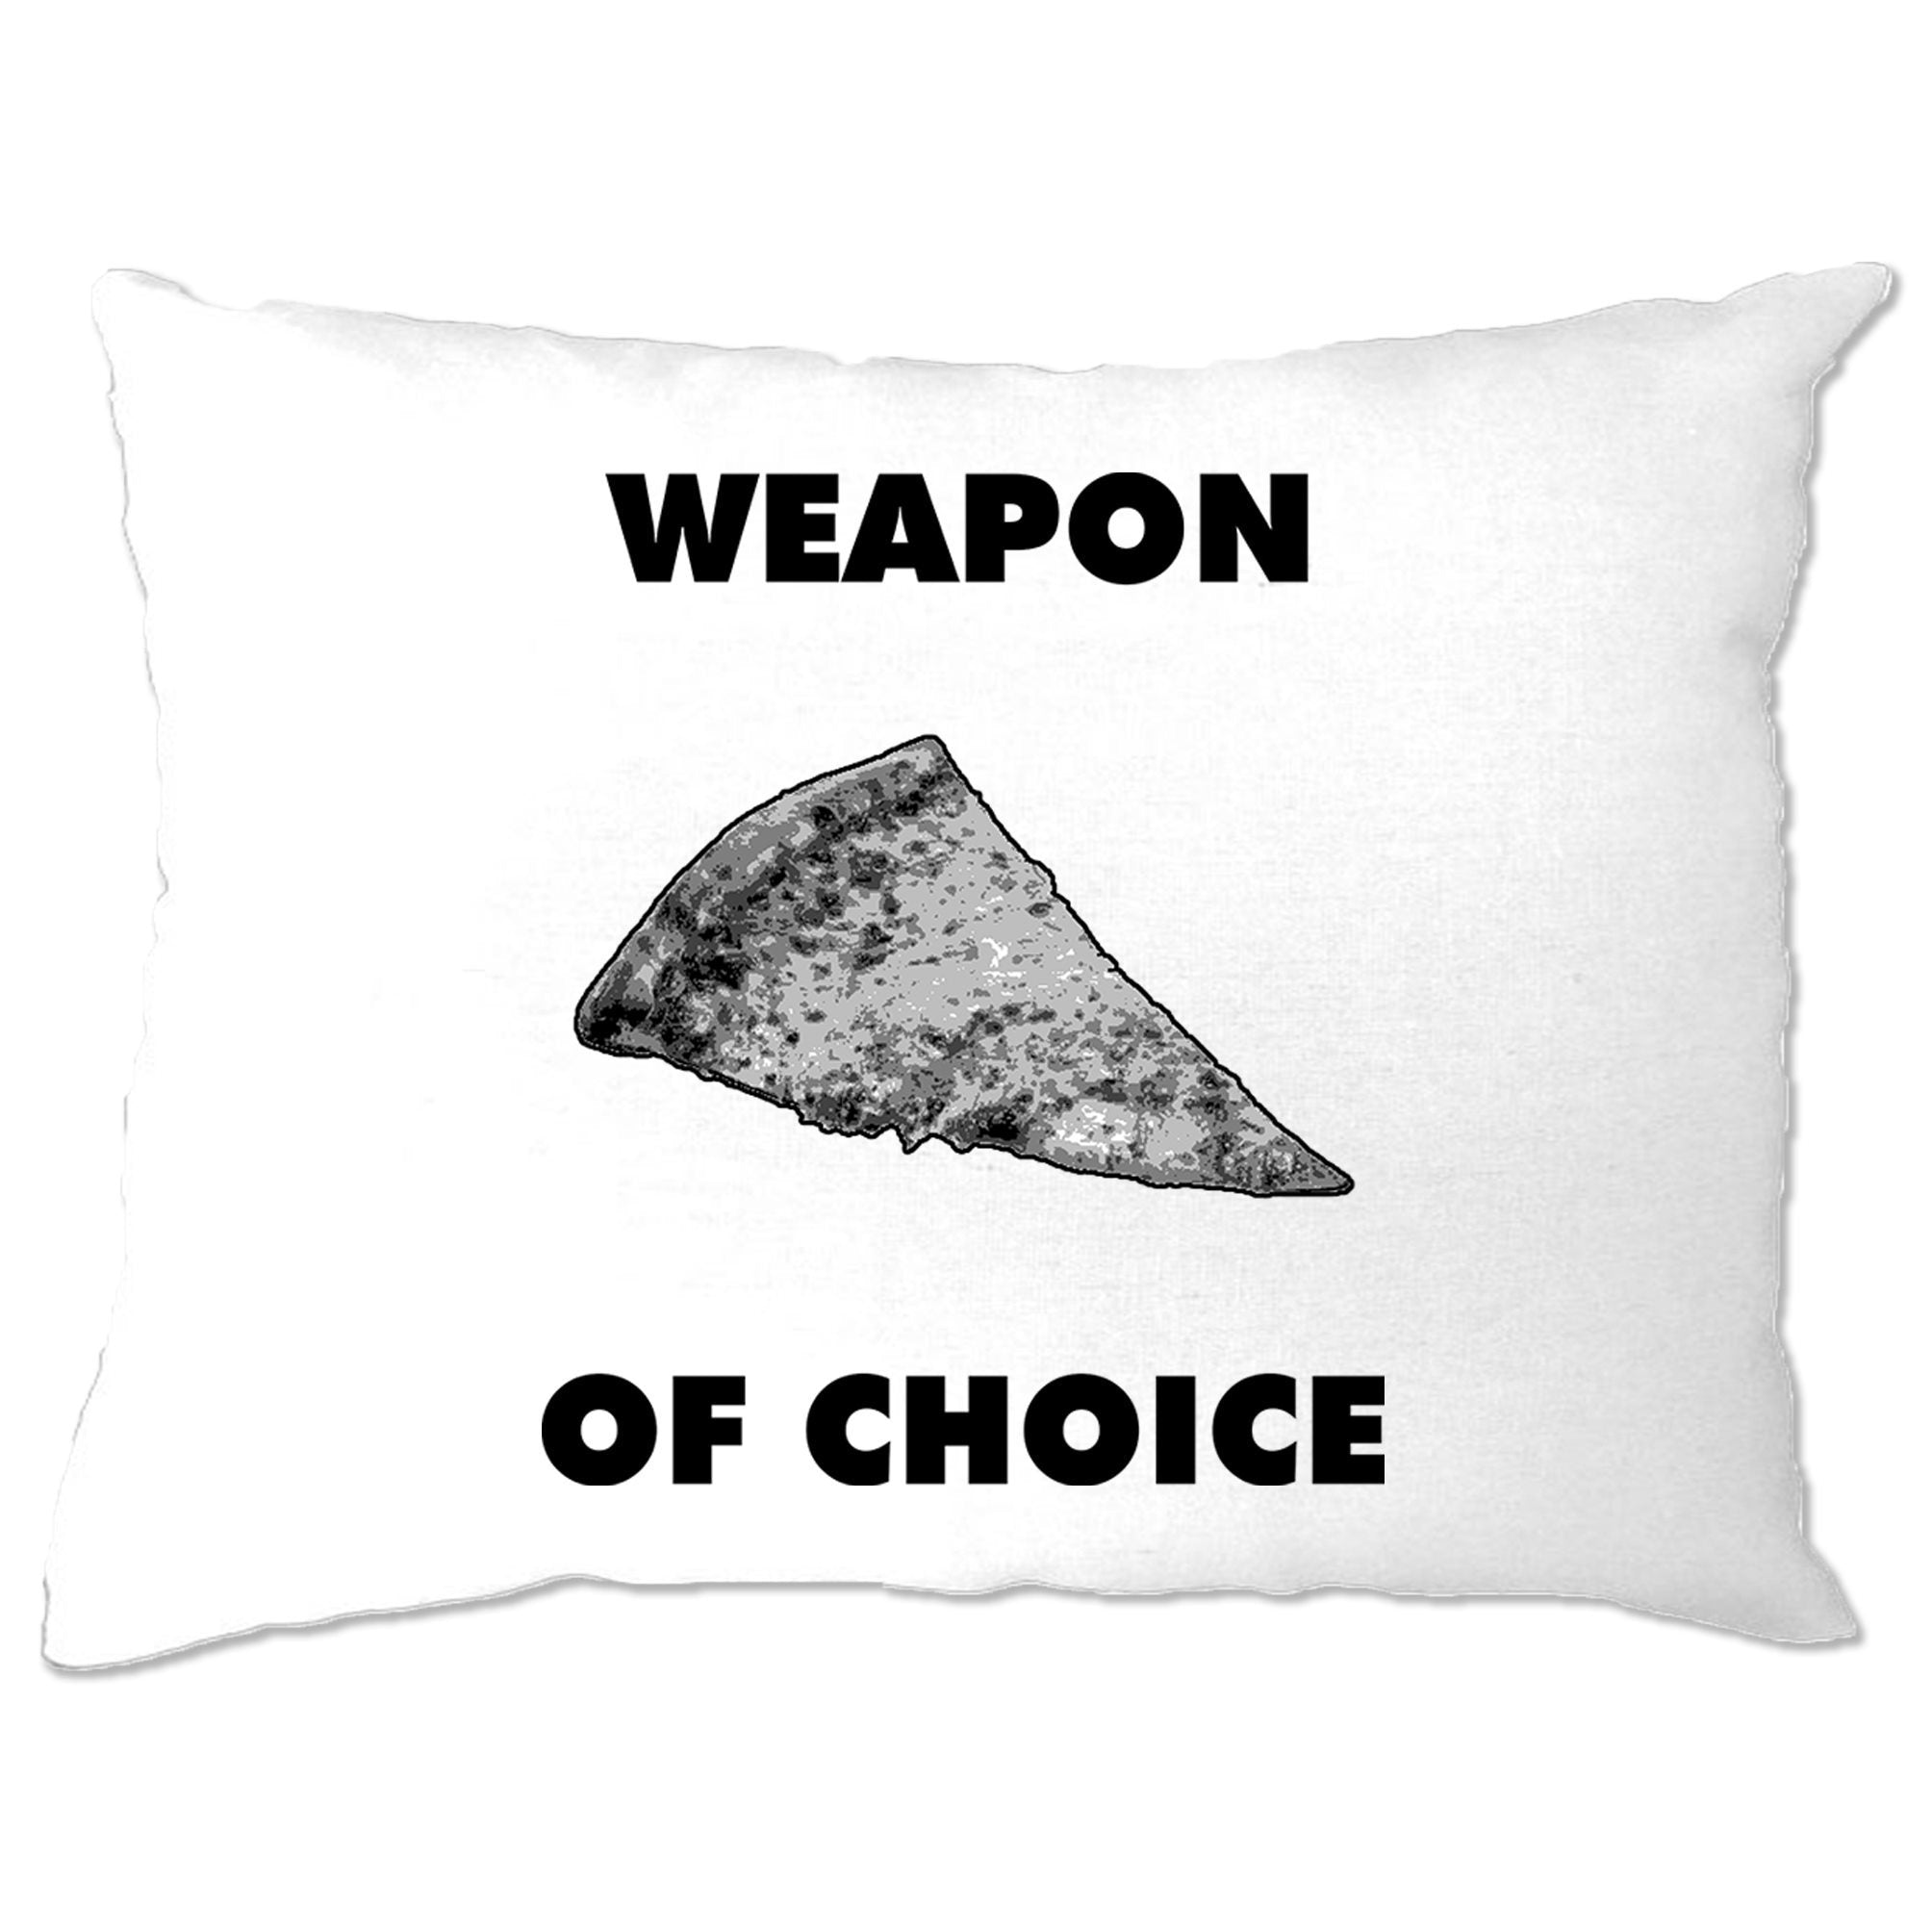 Novelty Food Pillow Case Weapon of Choice Pizza Slice